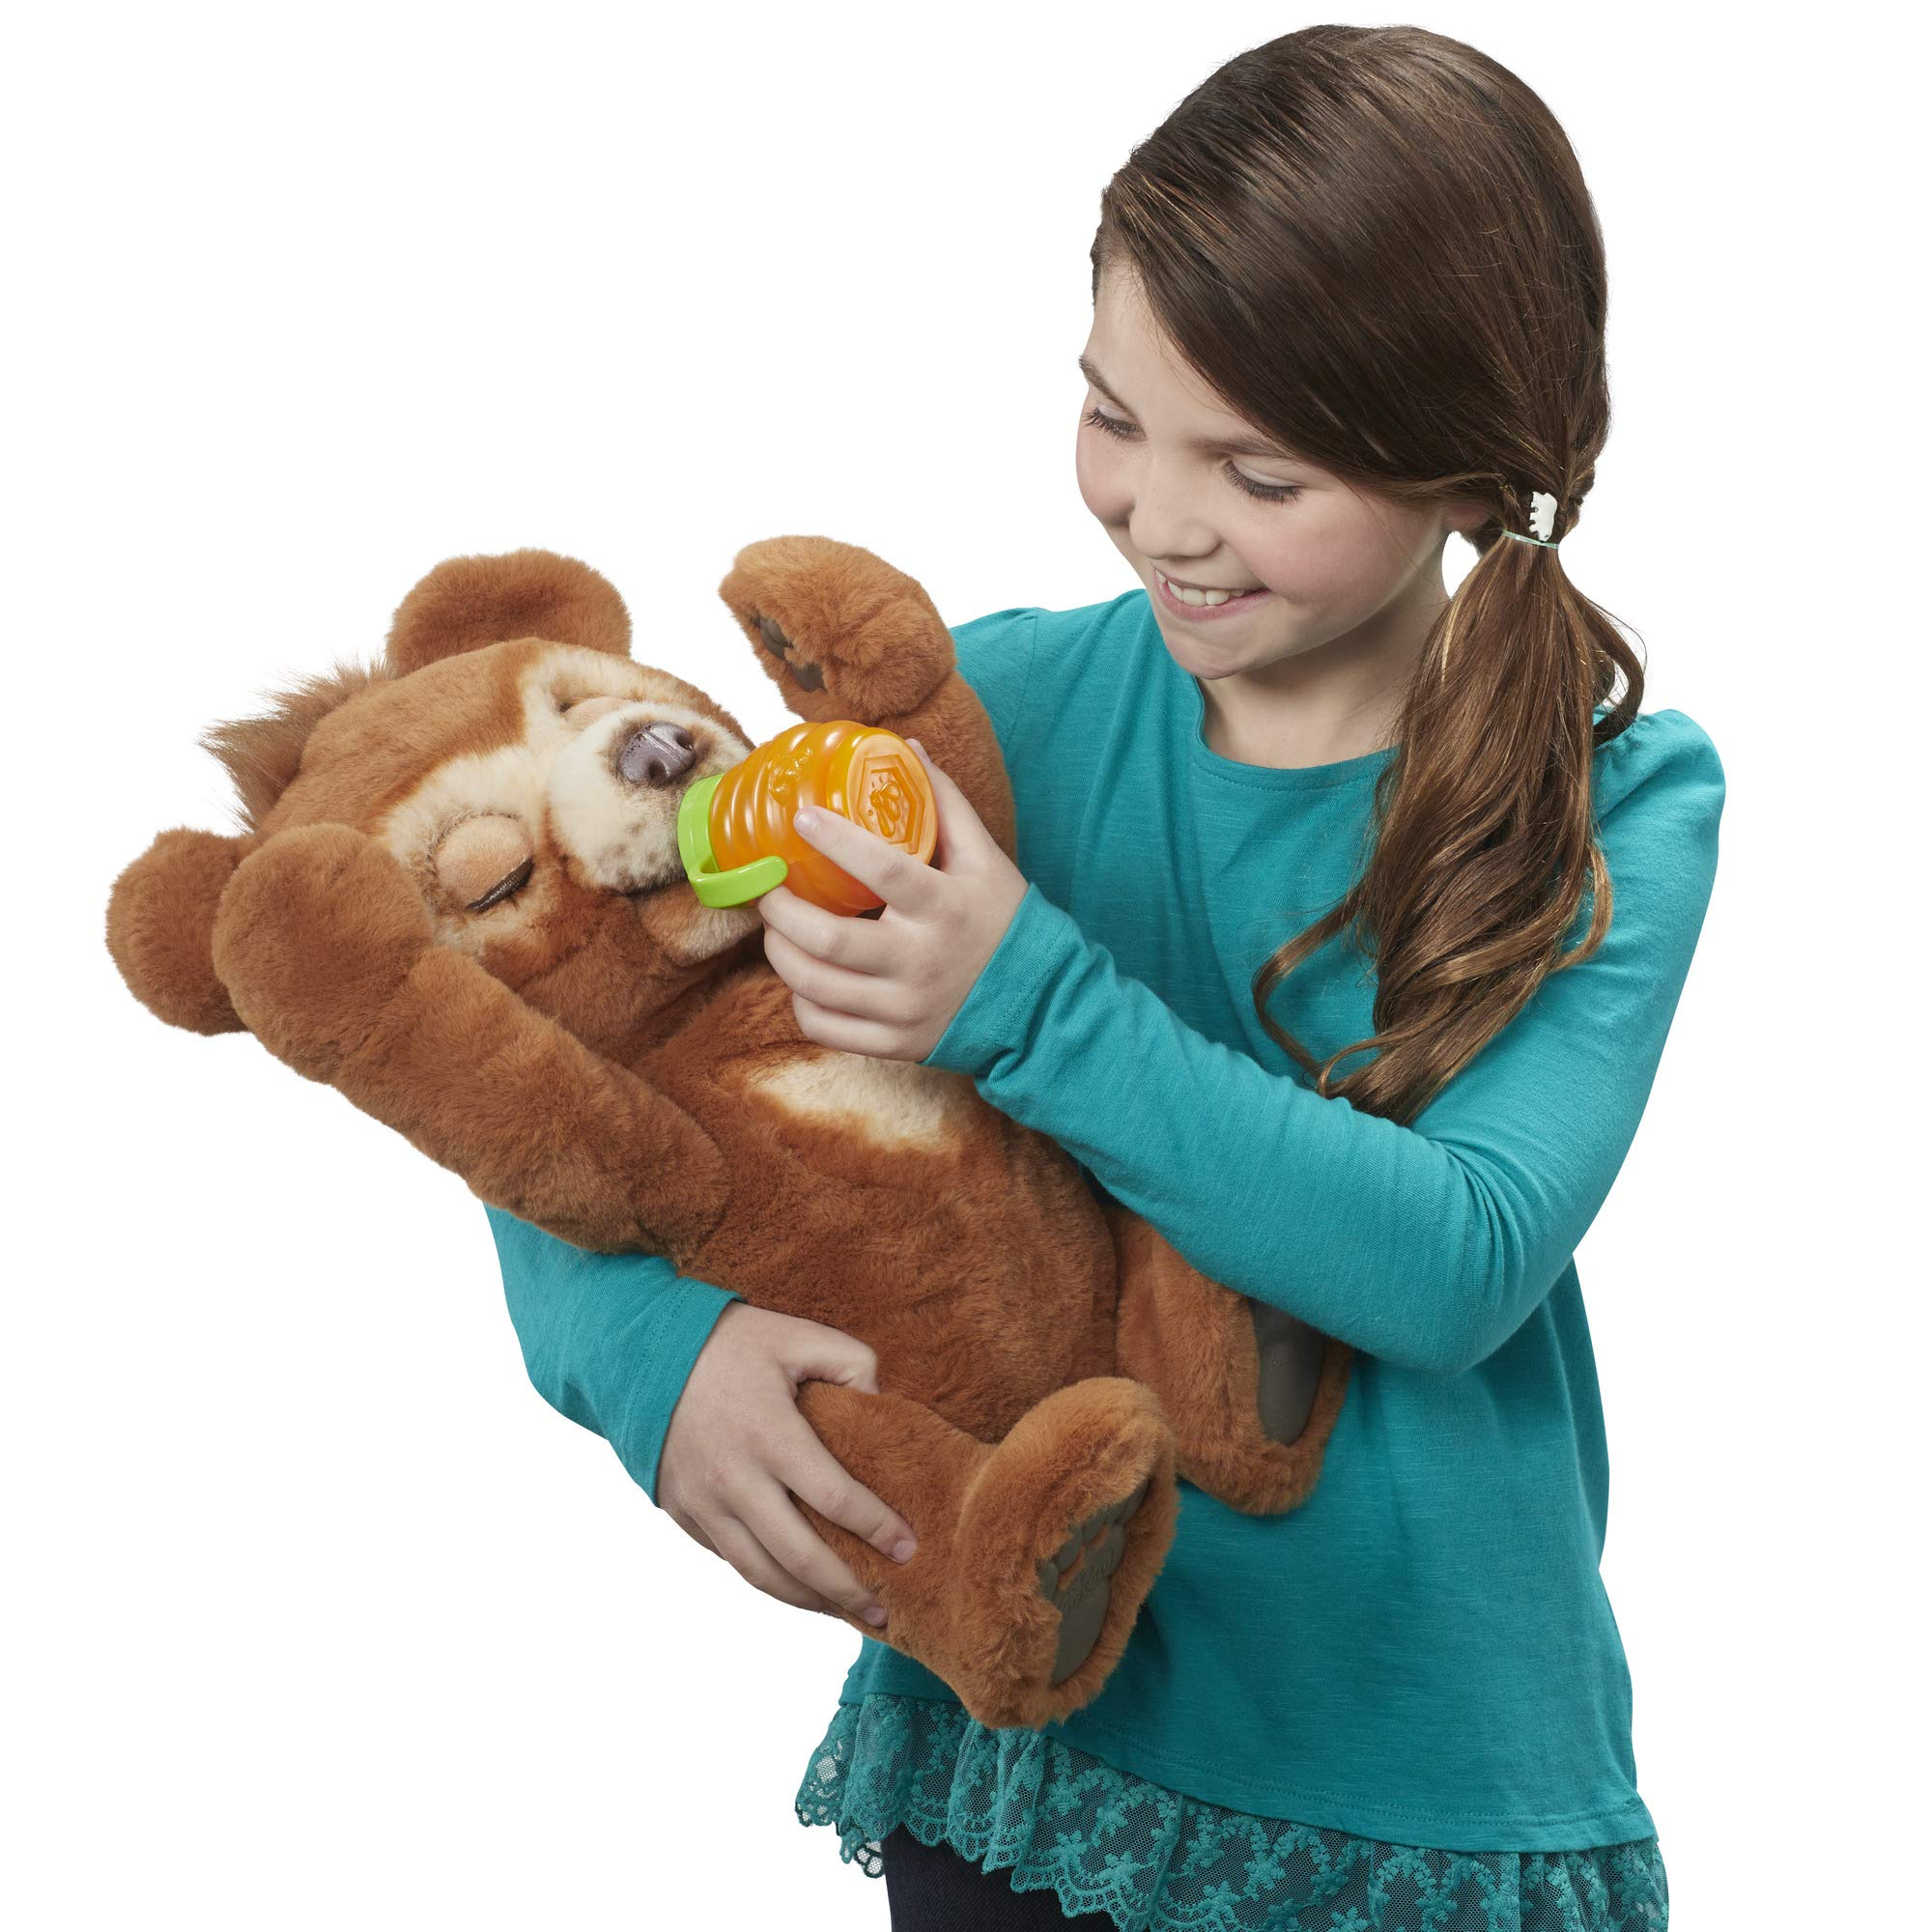 FurReal Cubby, The Curious Bear Interactive Plush Toy, Ages 4 and Up by FurReal (Image #3)